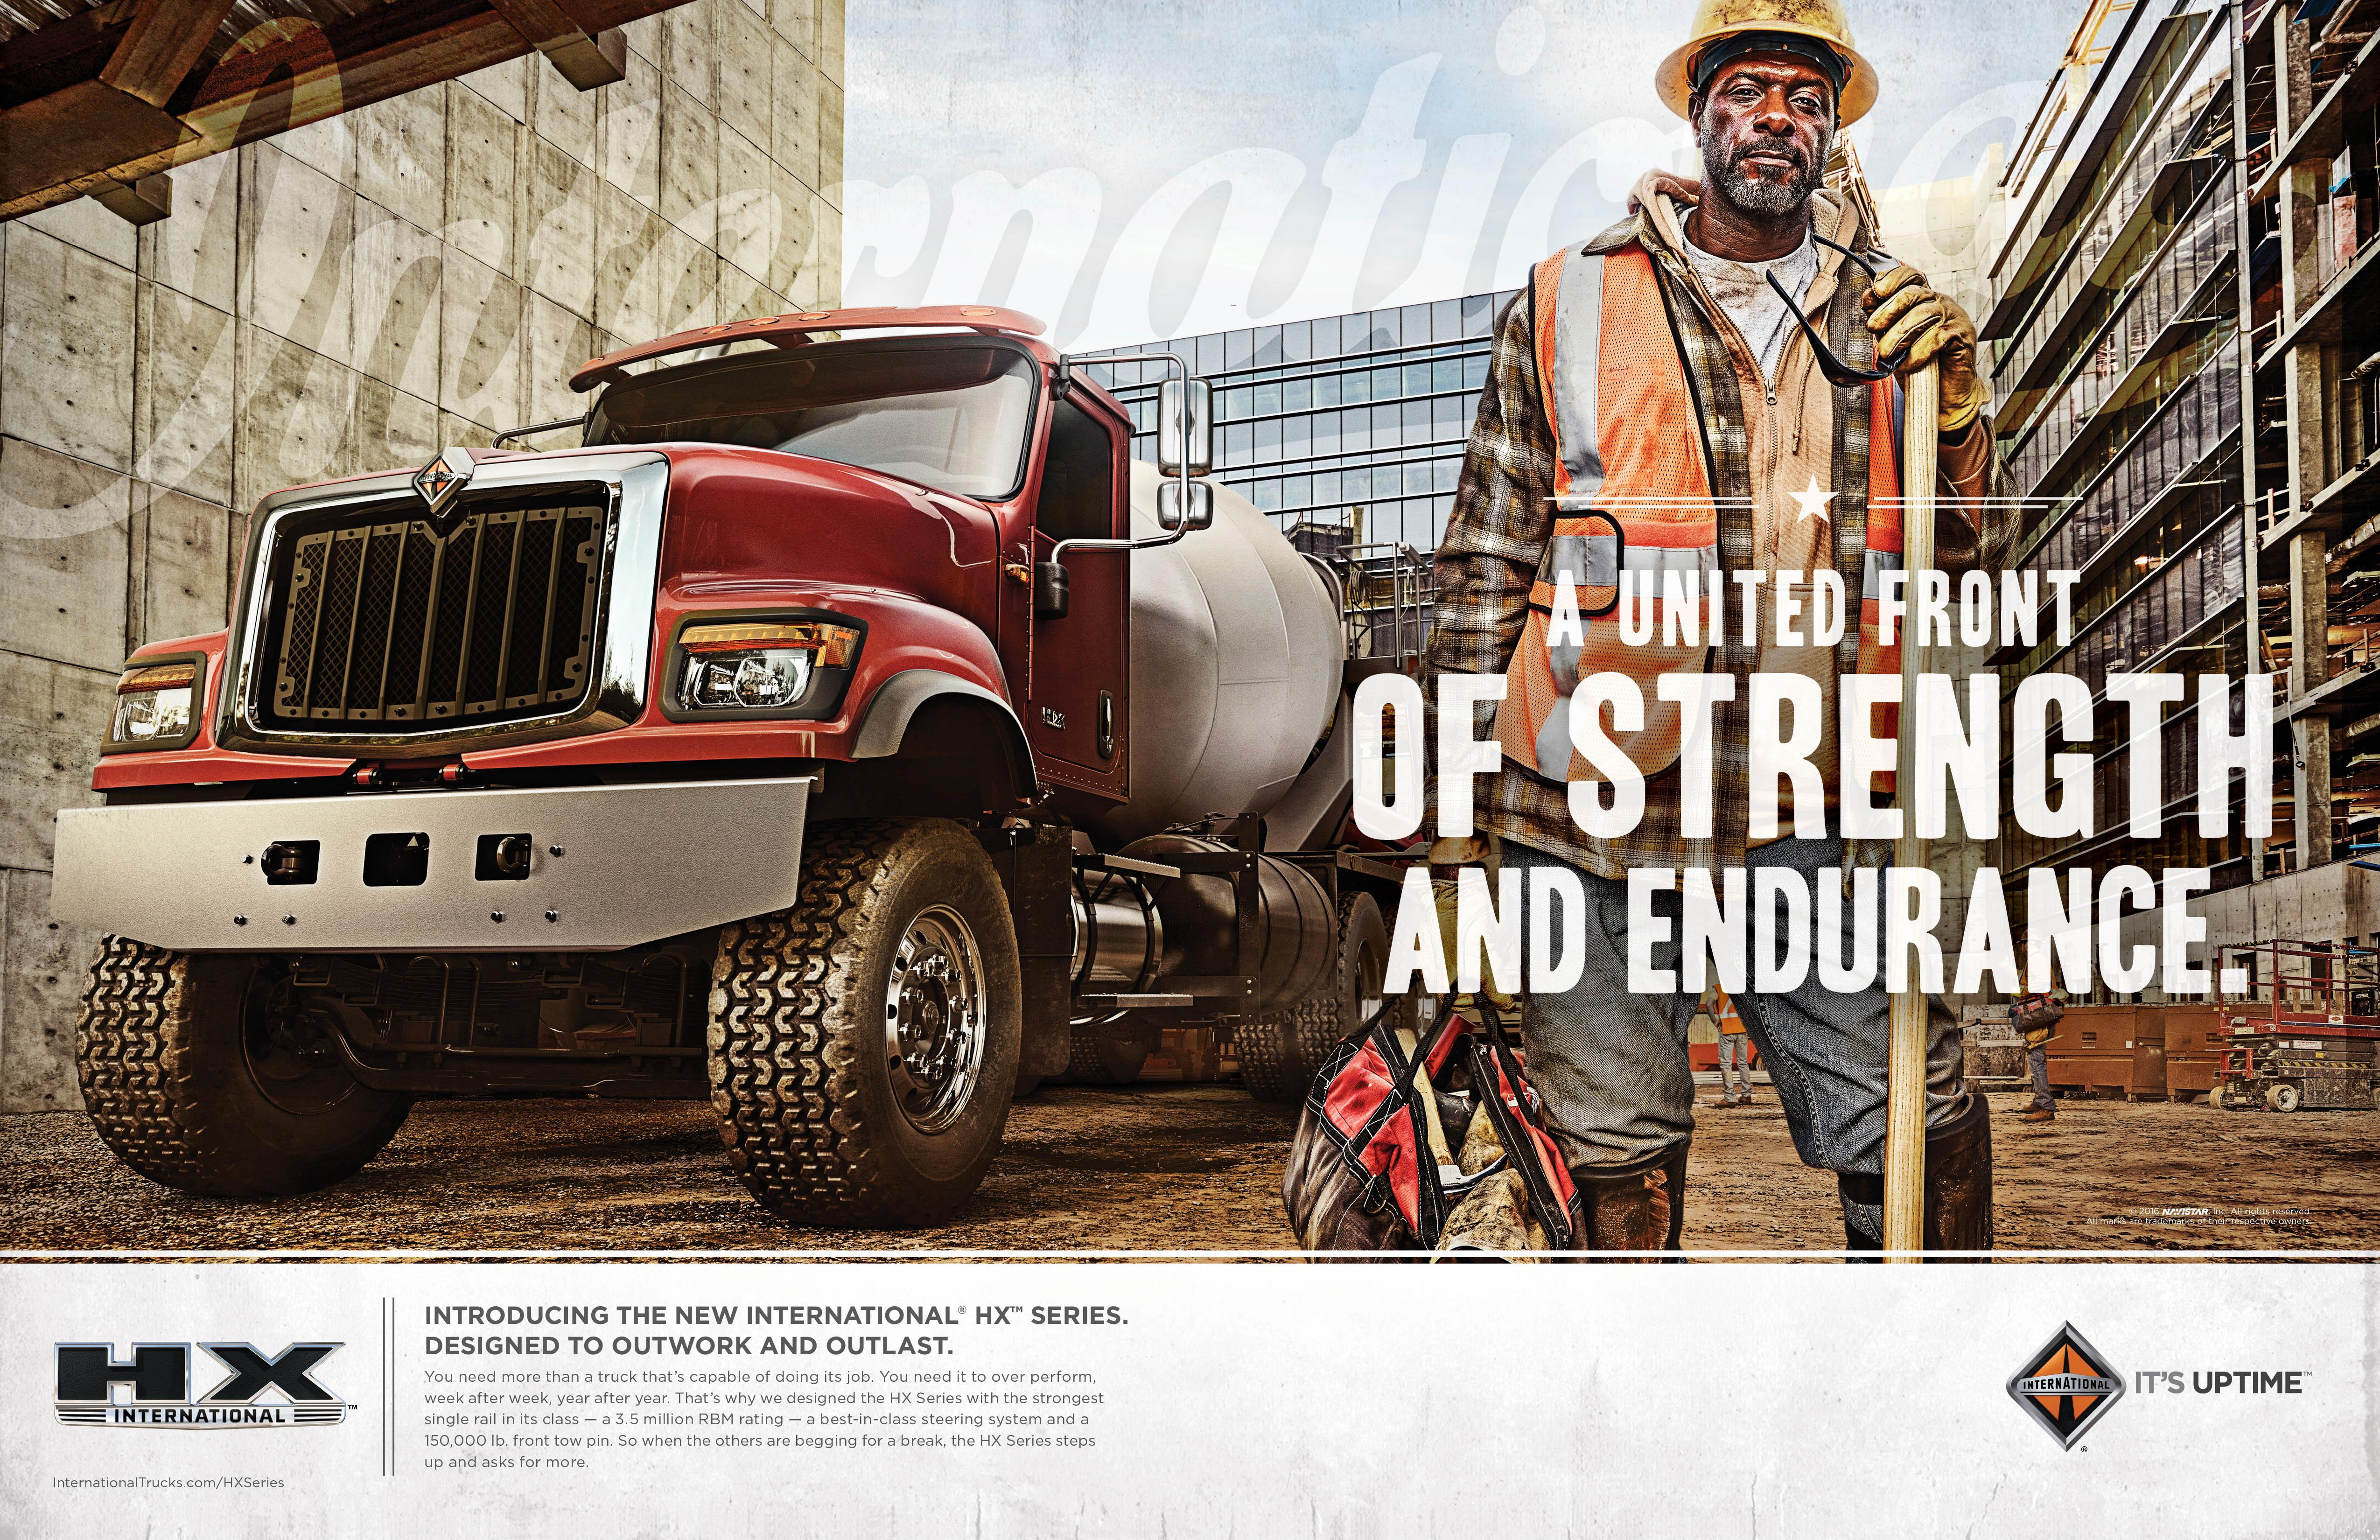 International Trucks: A United Front of Strength and Endurance